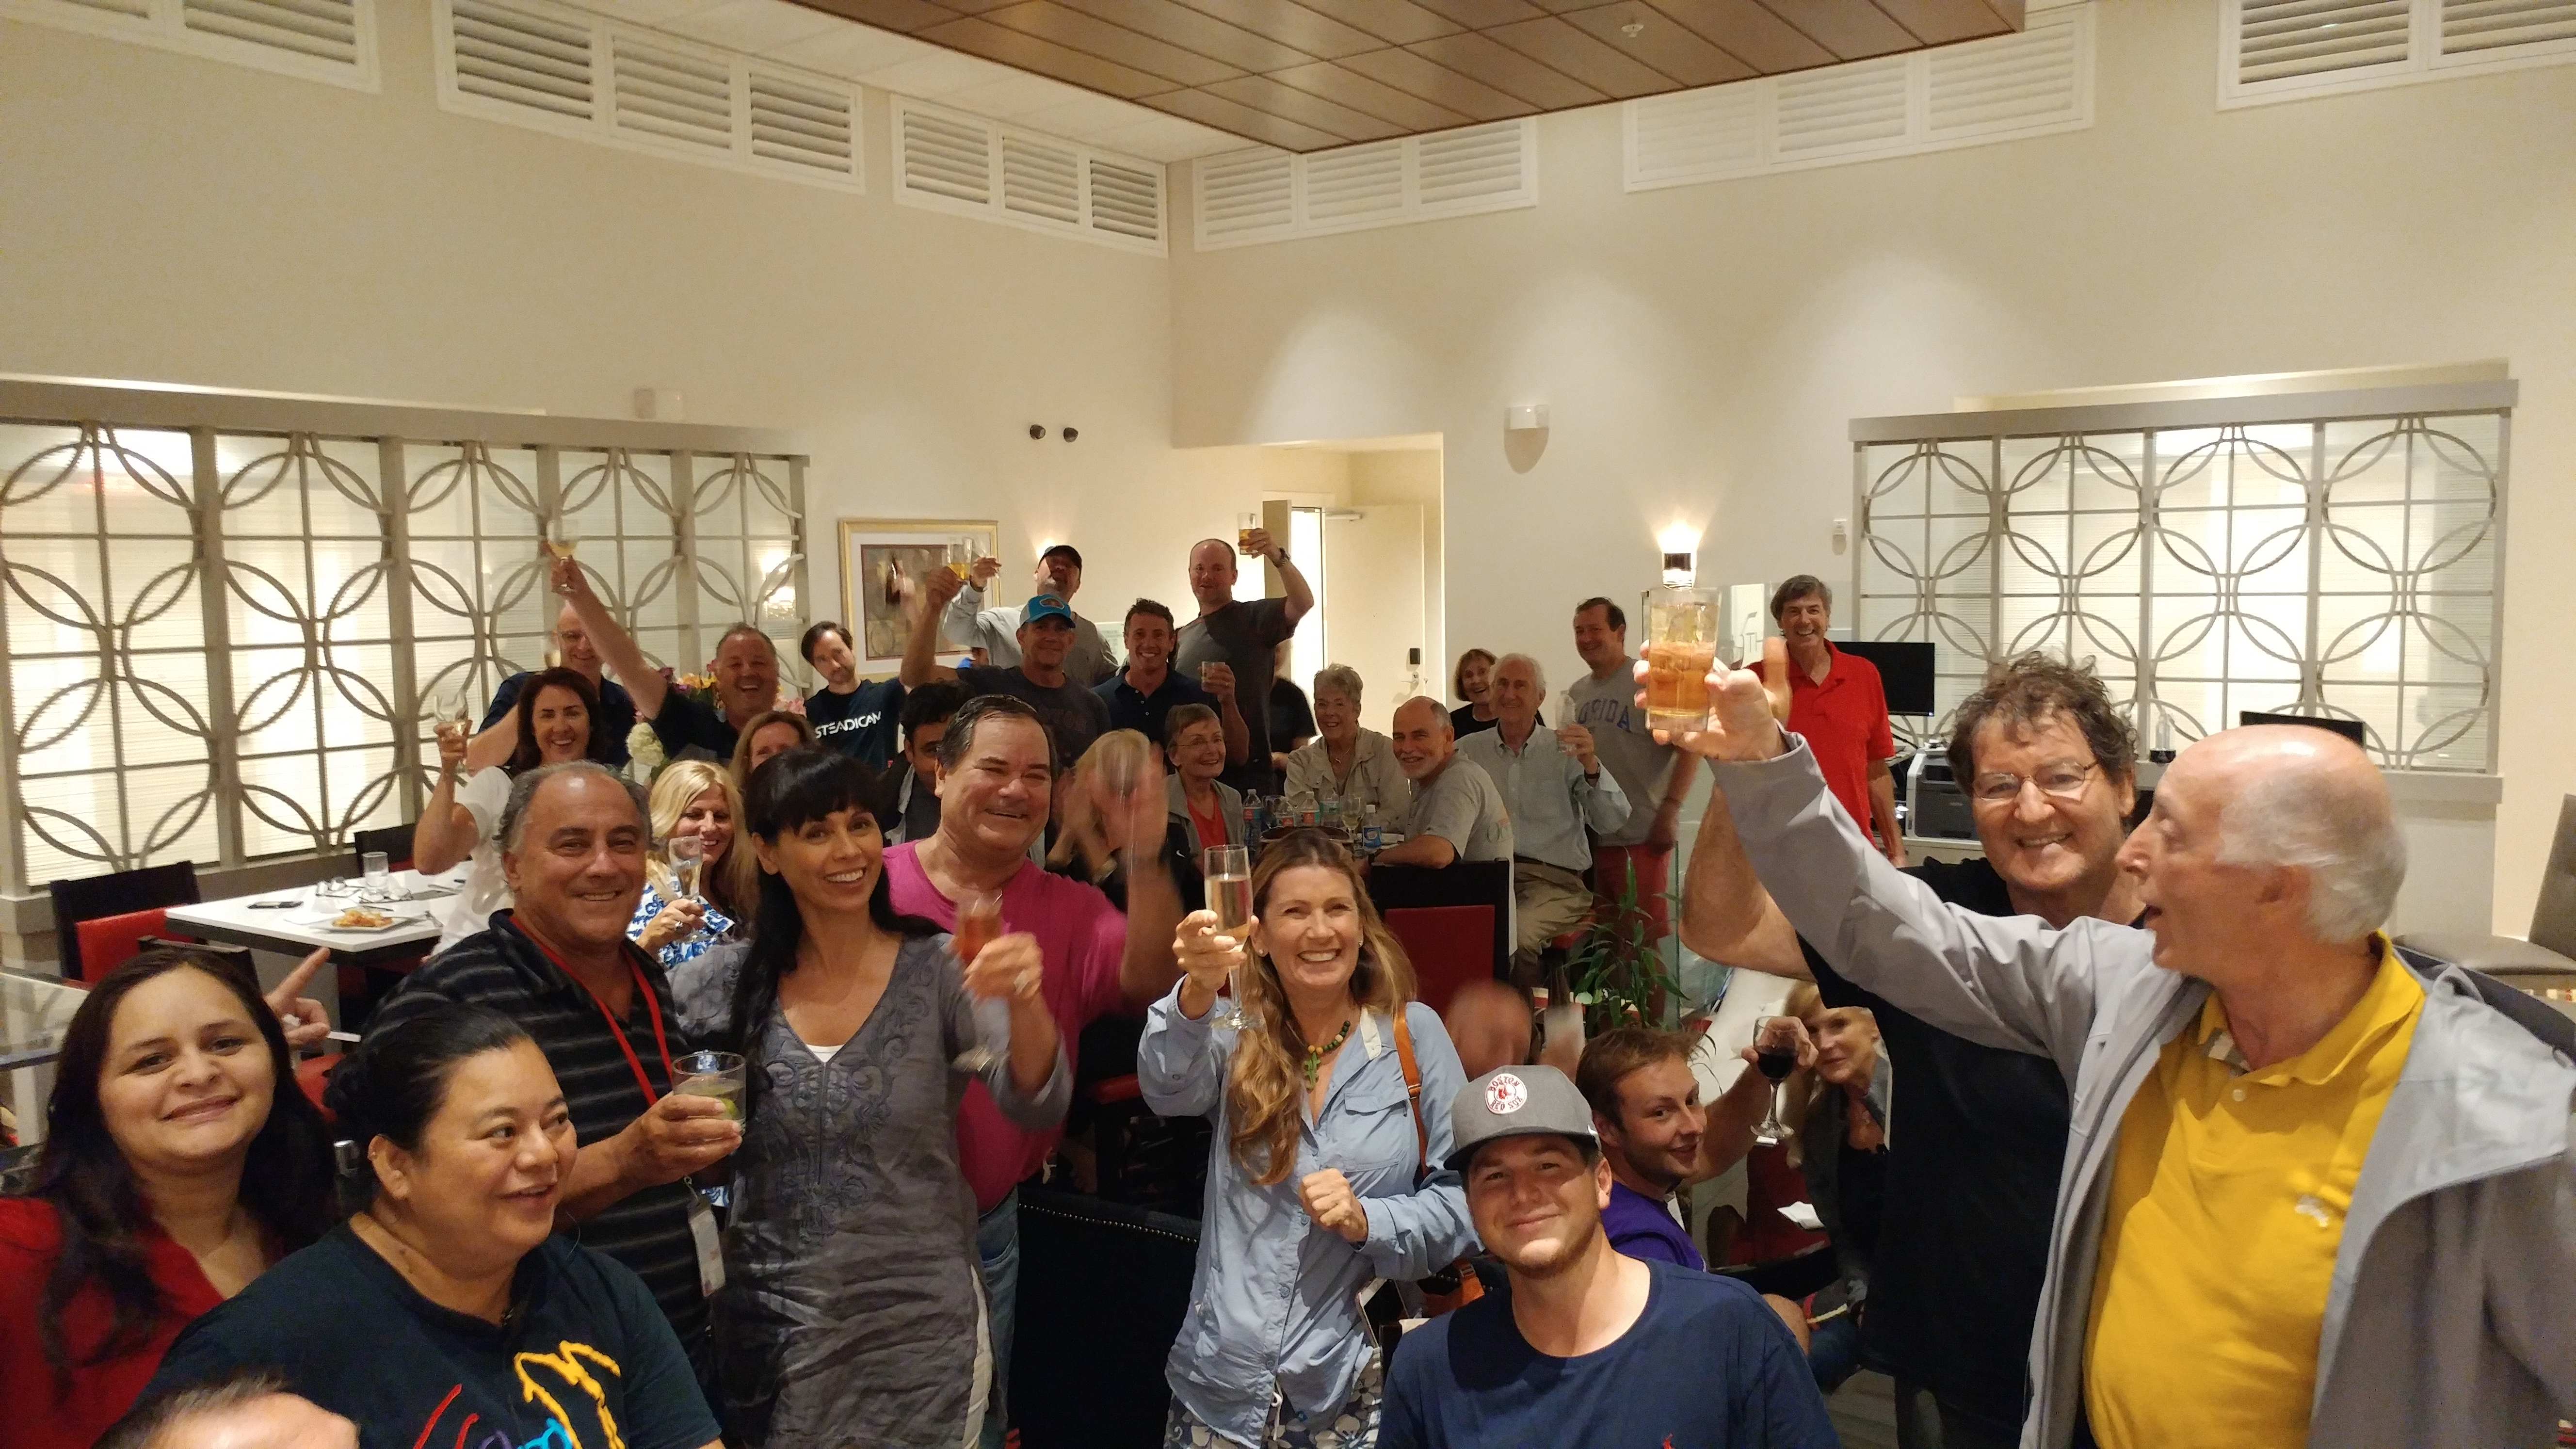 General Manager Phil McCabe raises a glass with guests and team members at the Inn on 5th.